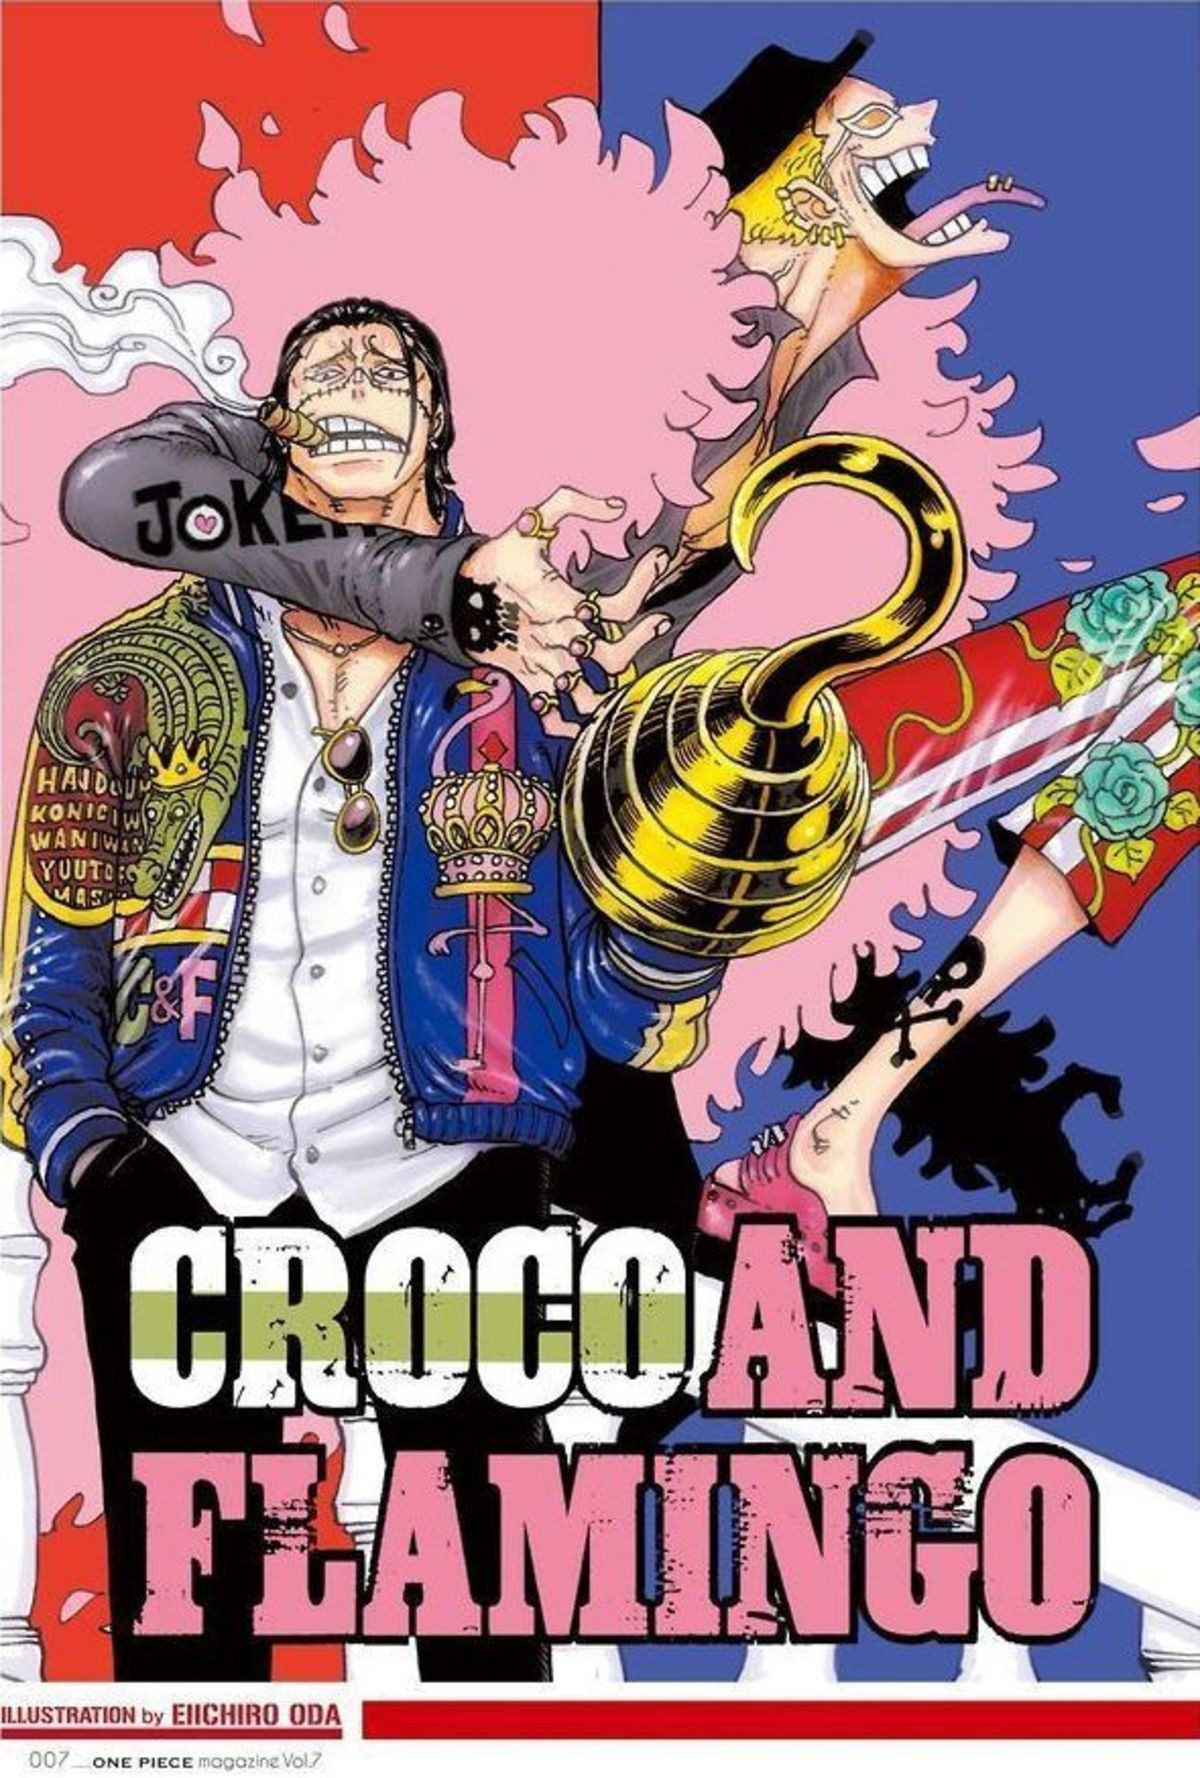 crocomingo. join list: onepiece (236 subs)Mention History.. My two favorite villains. I hope we get more Crocodile in the new world, a lot of people dont think he's very strong because Luffy took him out early in the ser